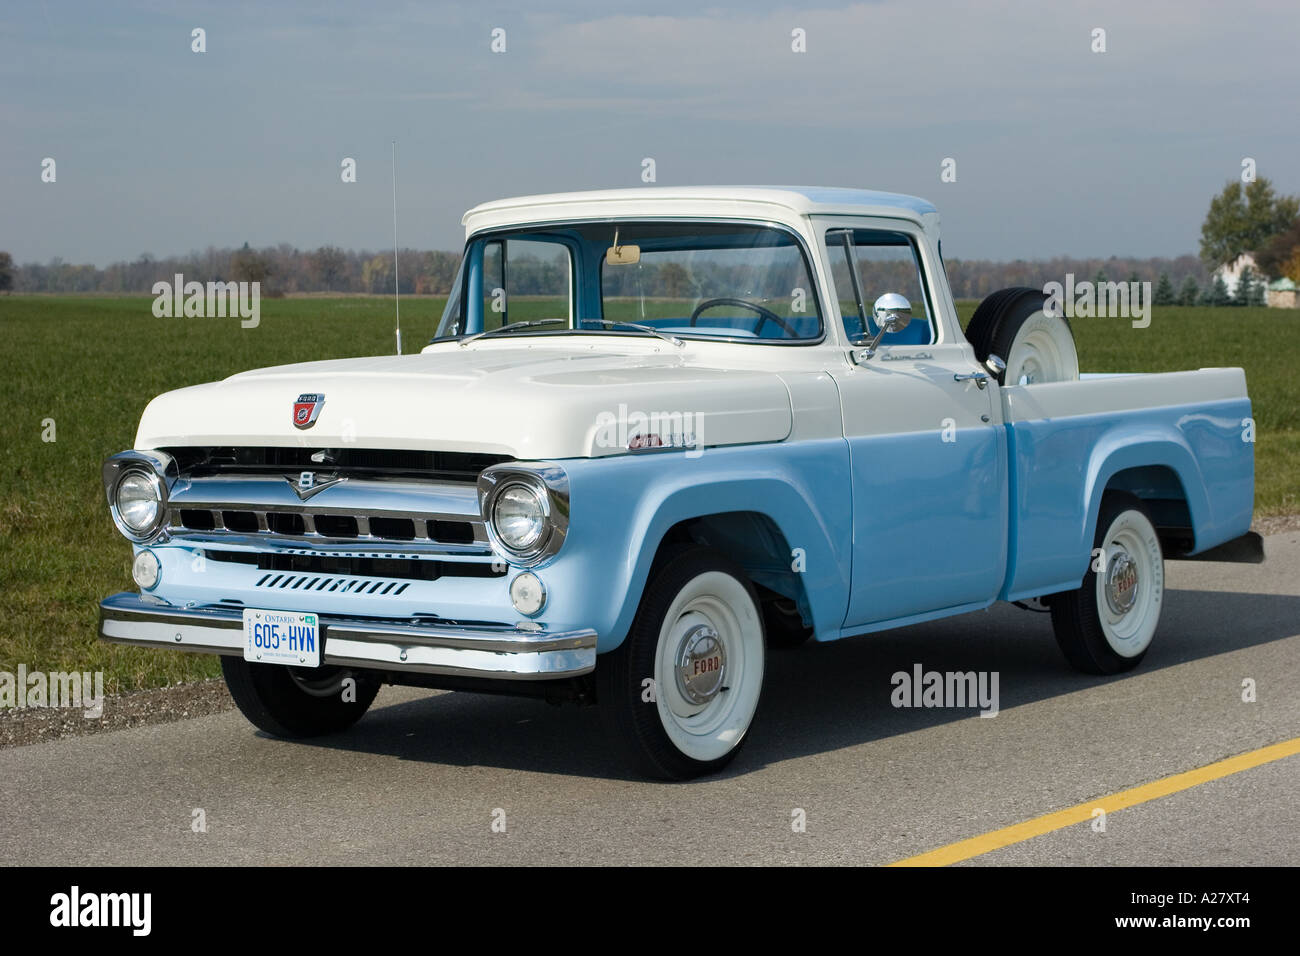 1957 Ford F 100 Pick Up Truck Stock Photo 5963523 Alamy